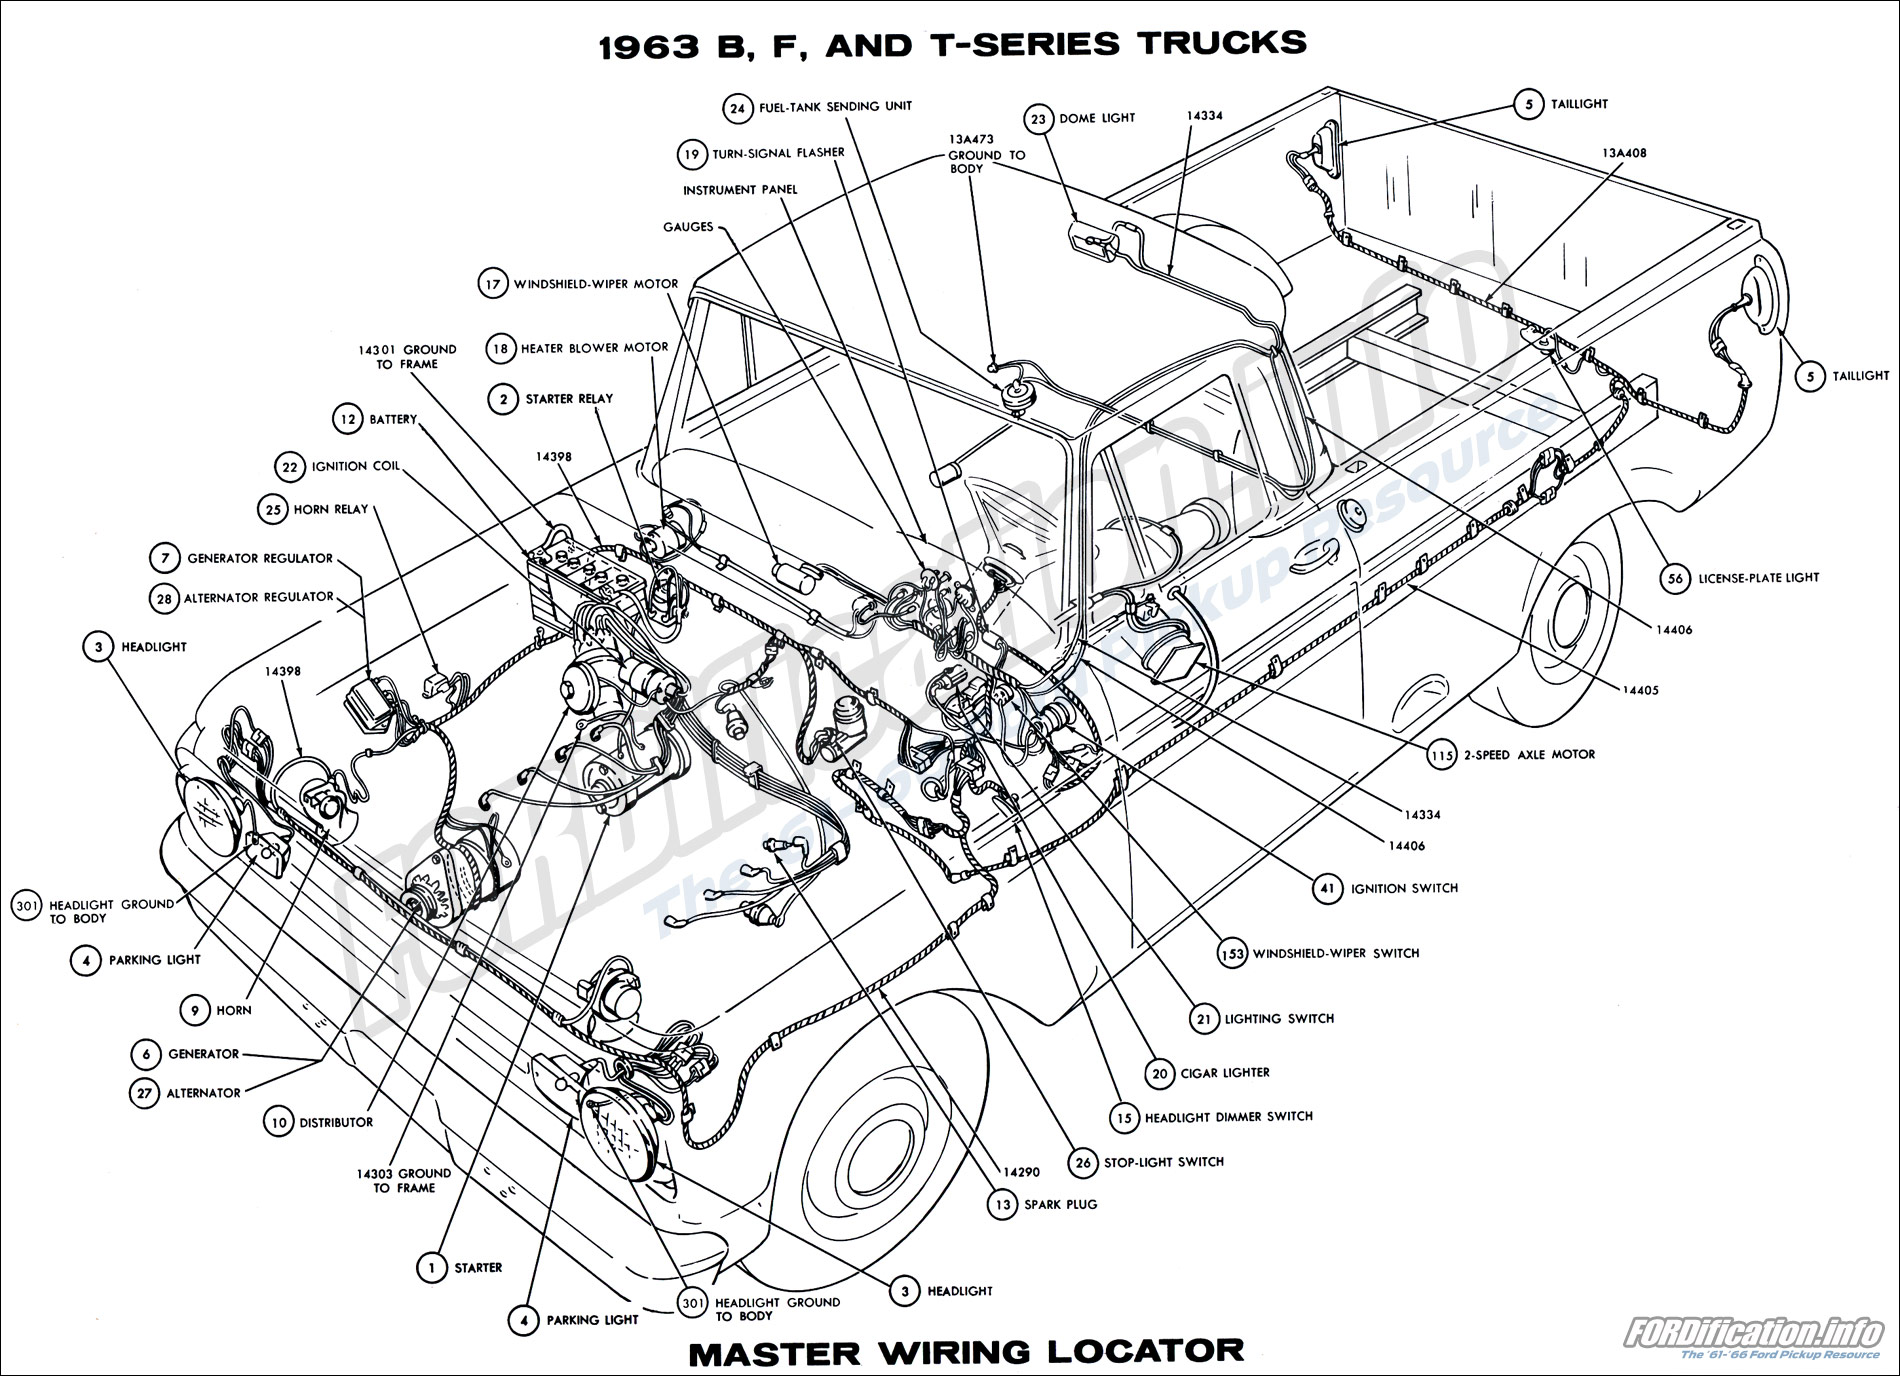 63masterlocator 1963 ford truck wiring diagrams fordification info the '61 '66 wiring diagrams for 2017 ford trucks at webbmarketing.co